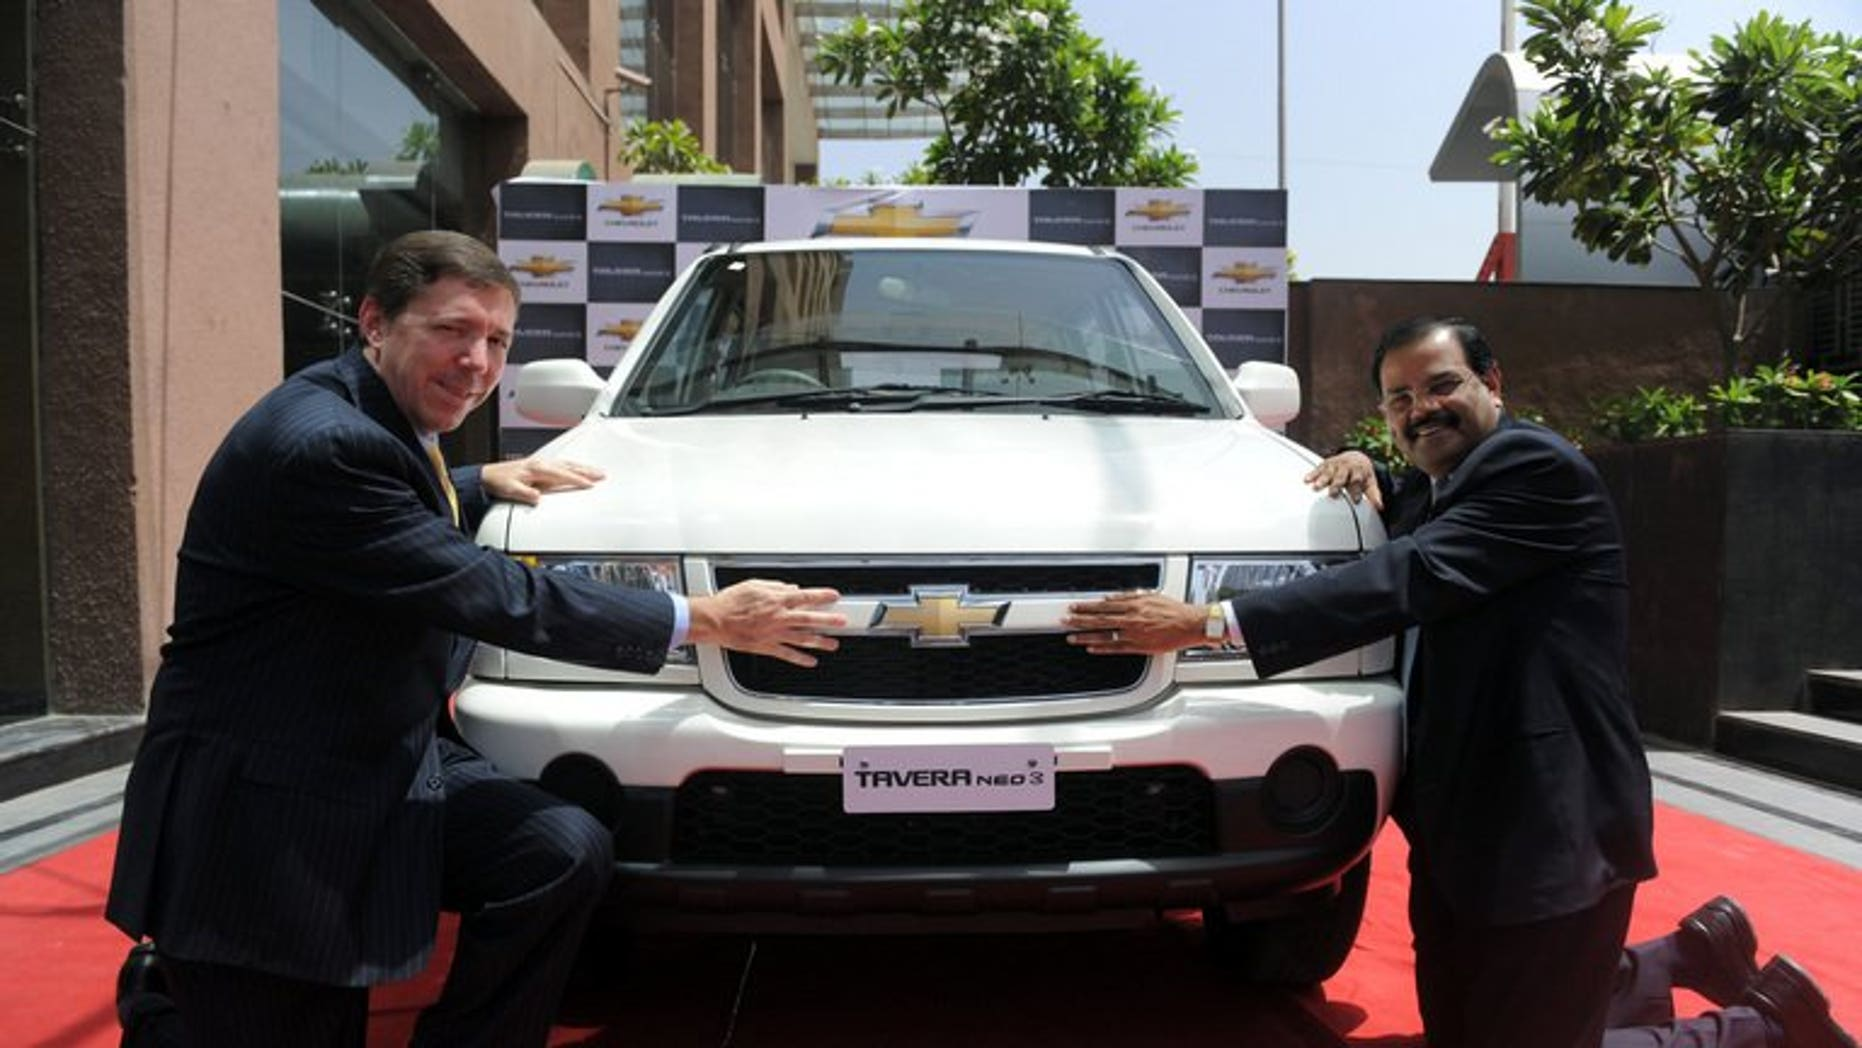 GM India executives Lowell Paddock (left) and P Balendran with the Chevrolet Tavera NEO 3 in Ahmedabad in March last year. General Motors India announced Wednesday it was recalling 114,000 models of its Chevrolet Tavera compact car in one of the country's biggest such operations.